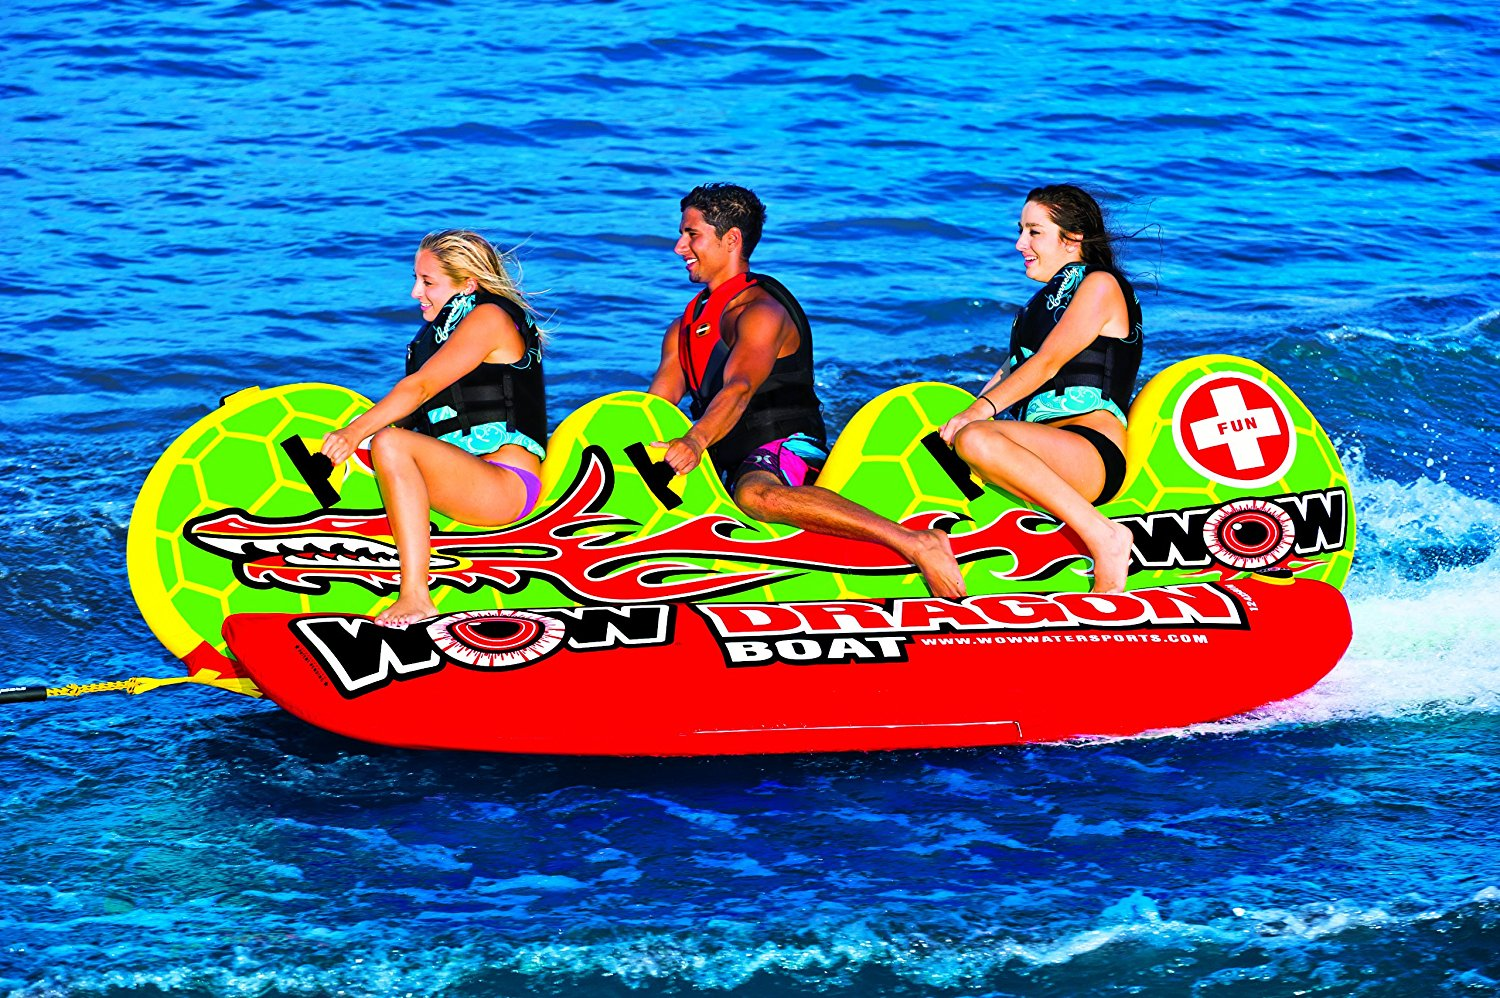 WOW Dragon Boat Towable Tube is a 3-seater water toy